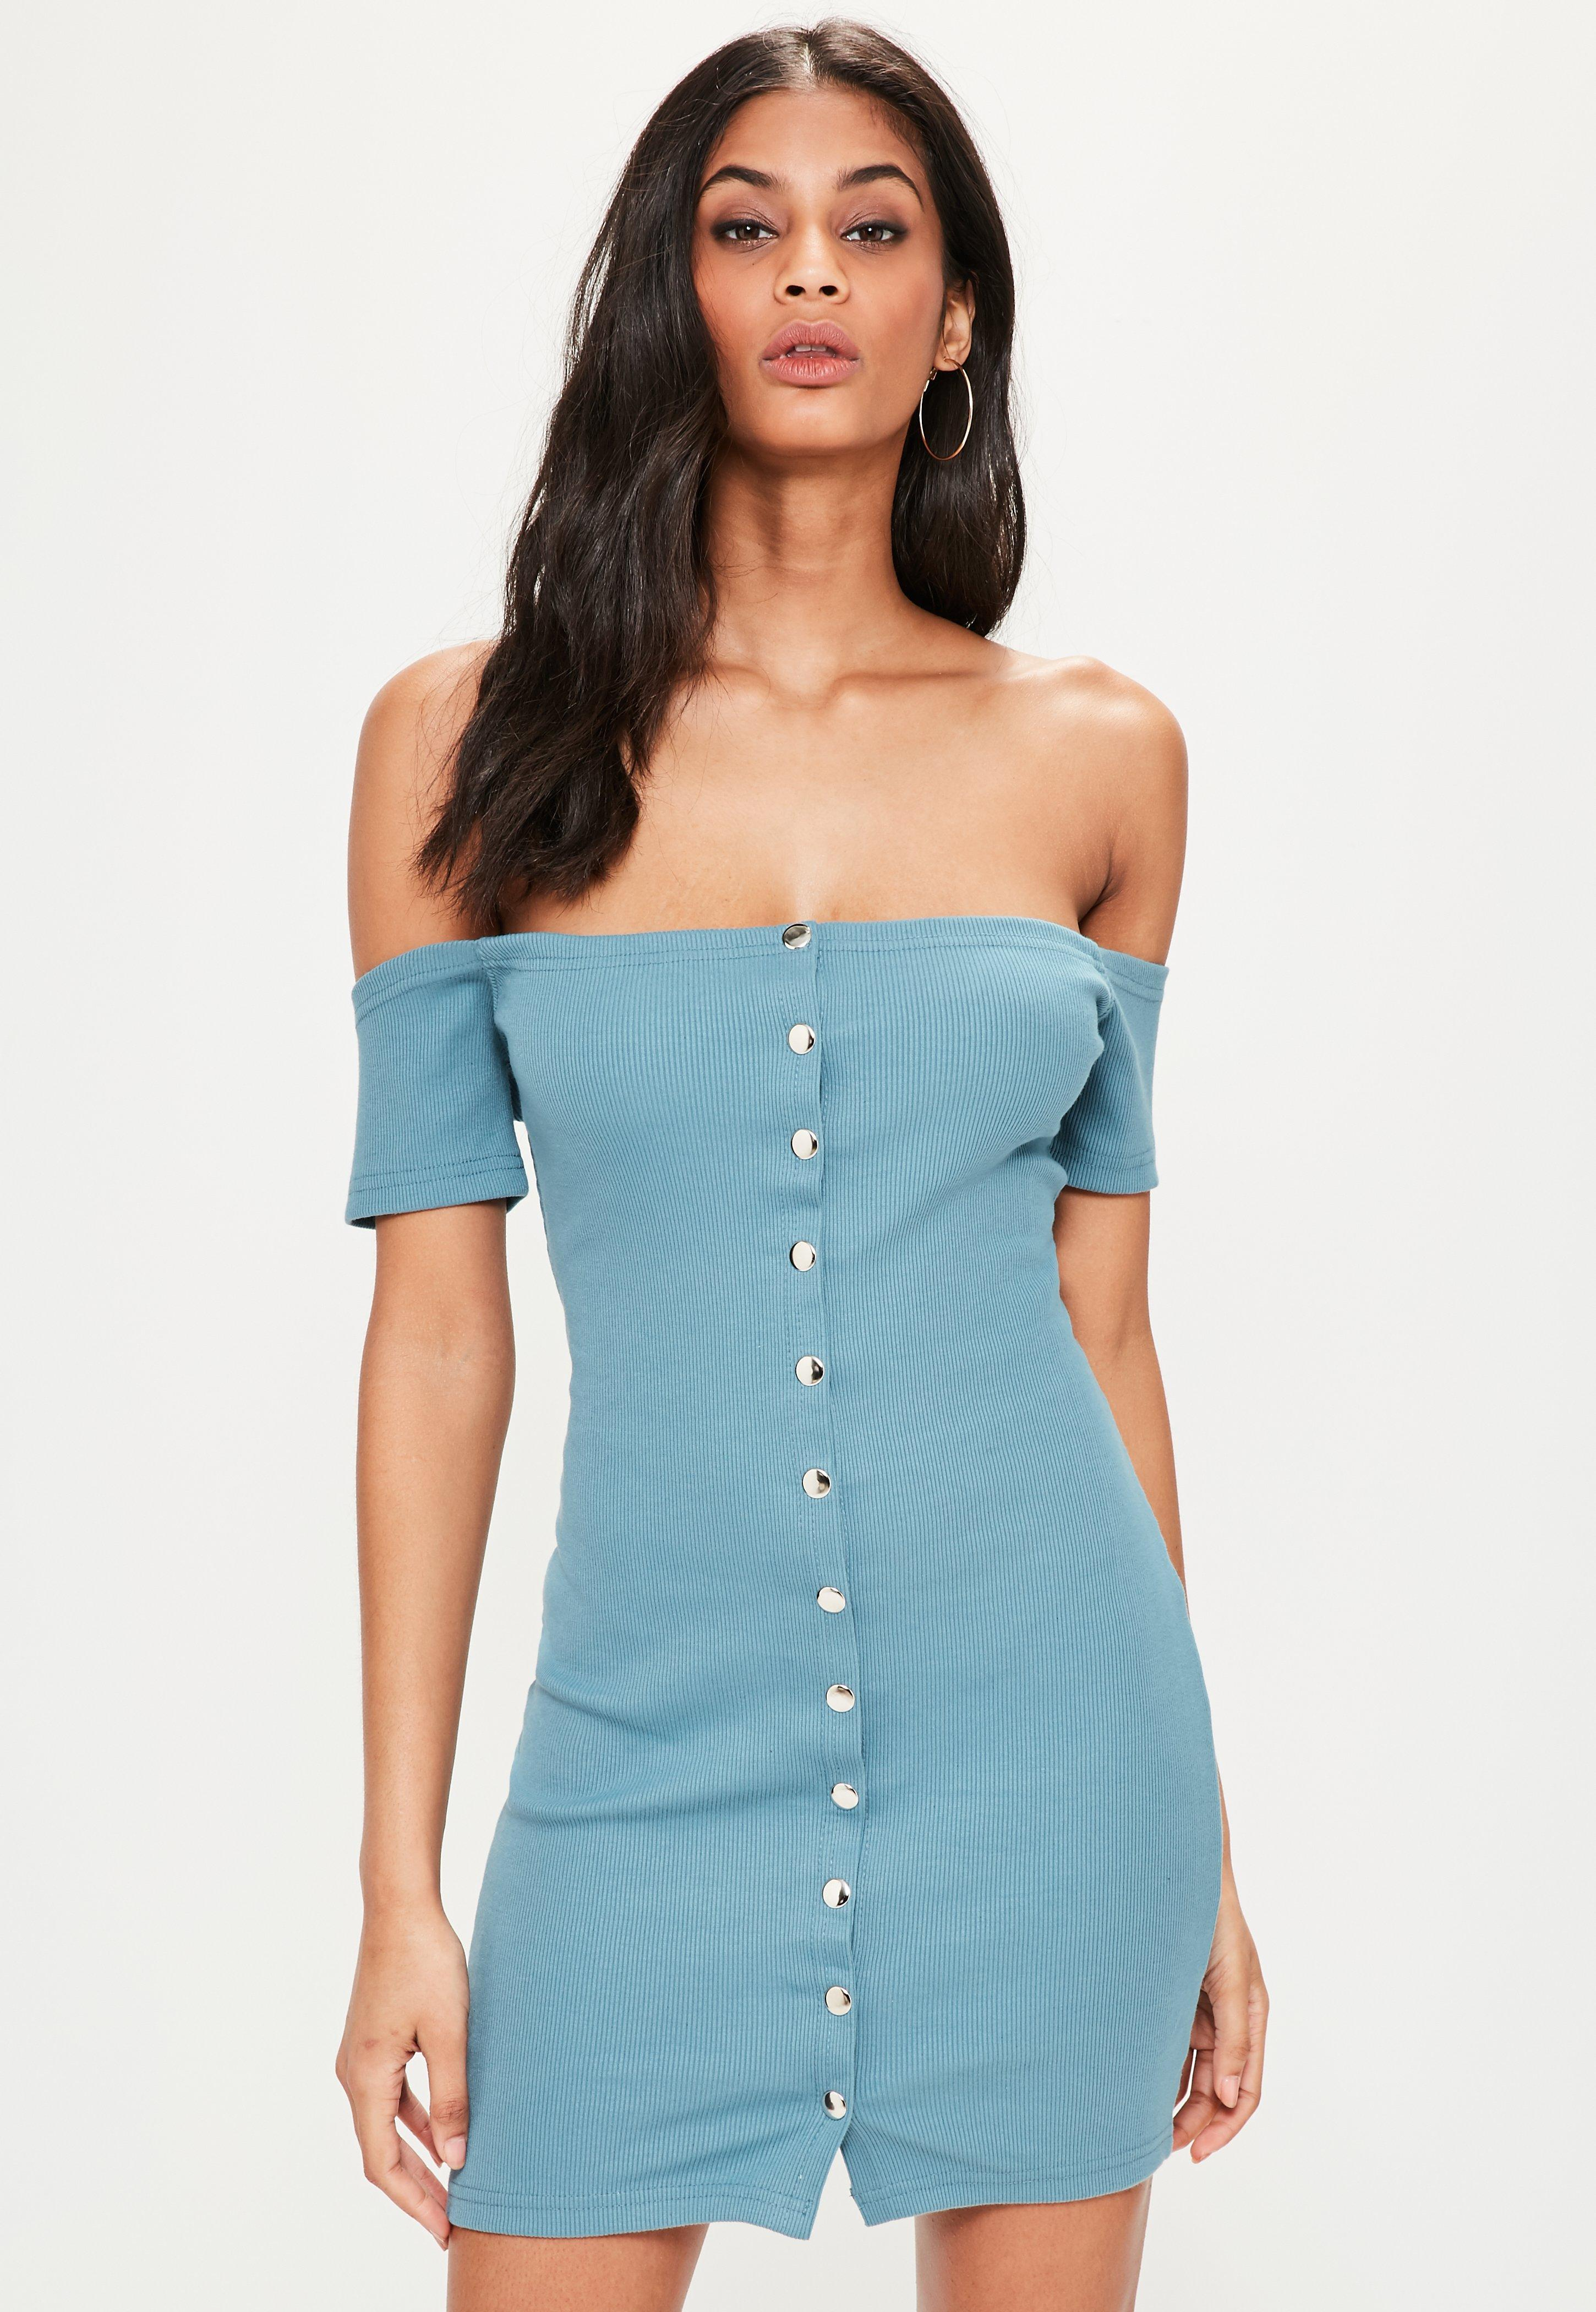 8e785938d80b Off the Shoulder Dresses - Bardot Dresses Online